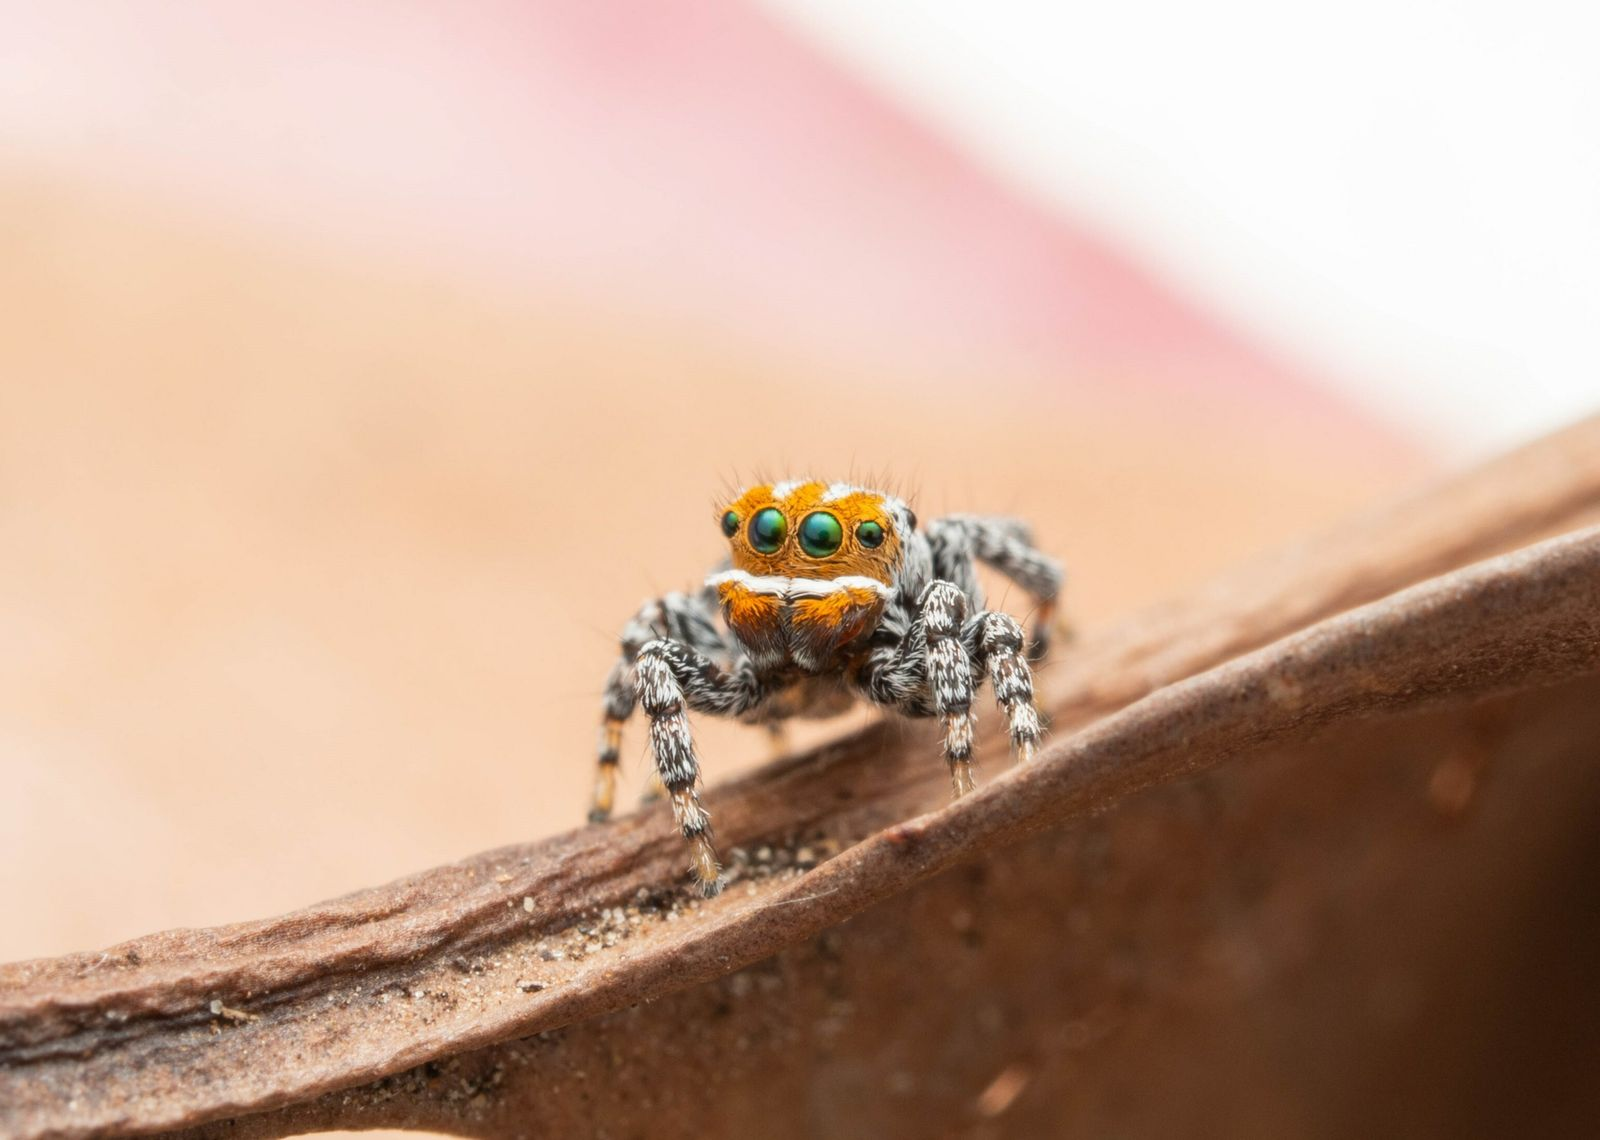 The newest peacock spider in Australia is called Nemo